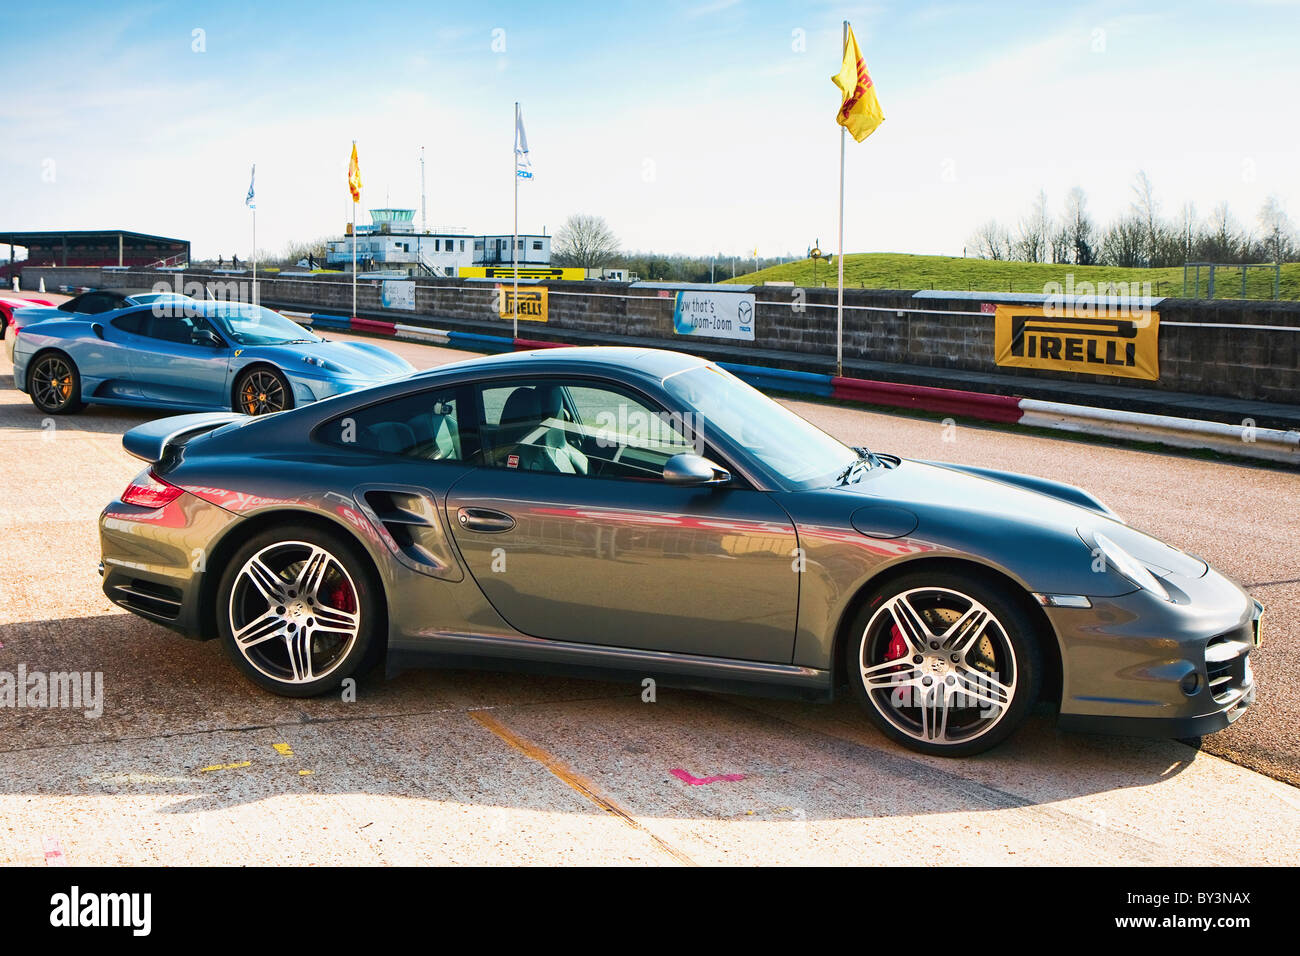 Side view of porsche sports car at Thruxton racing circuit - Stock Image